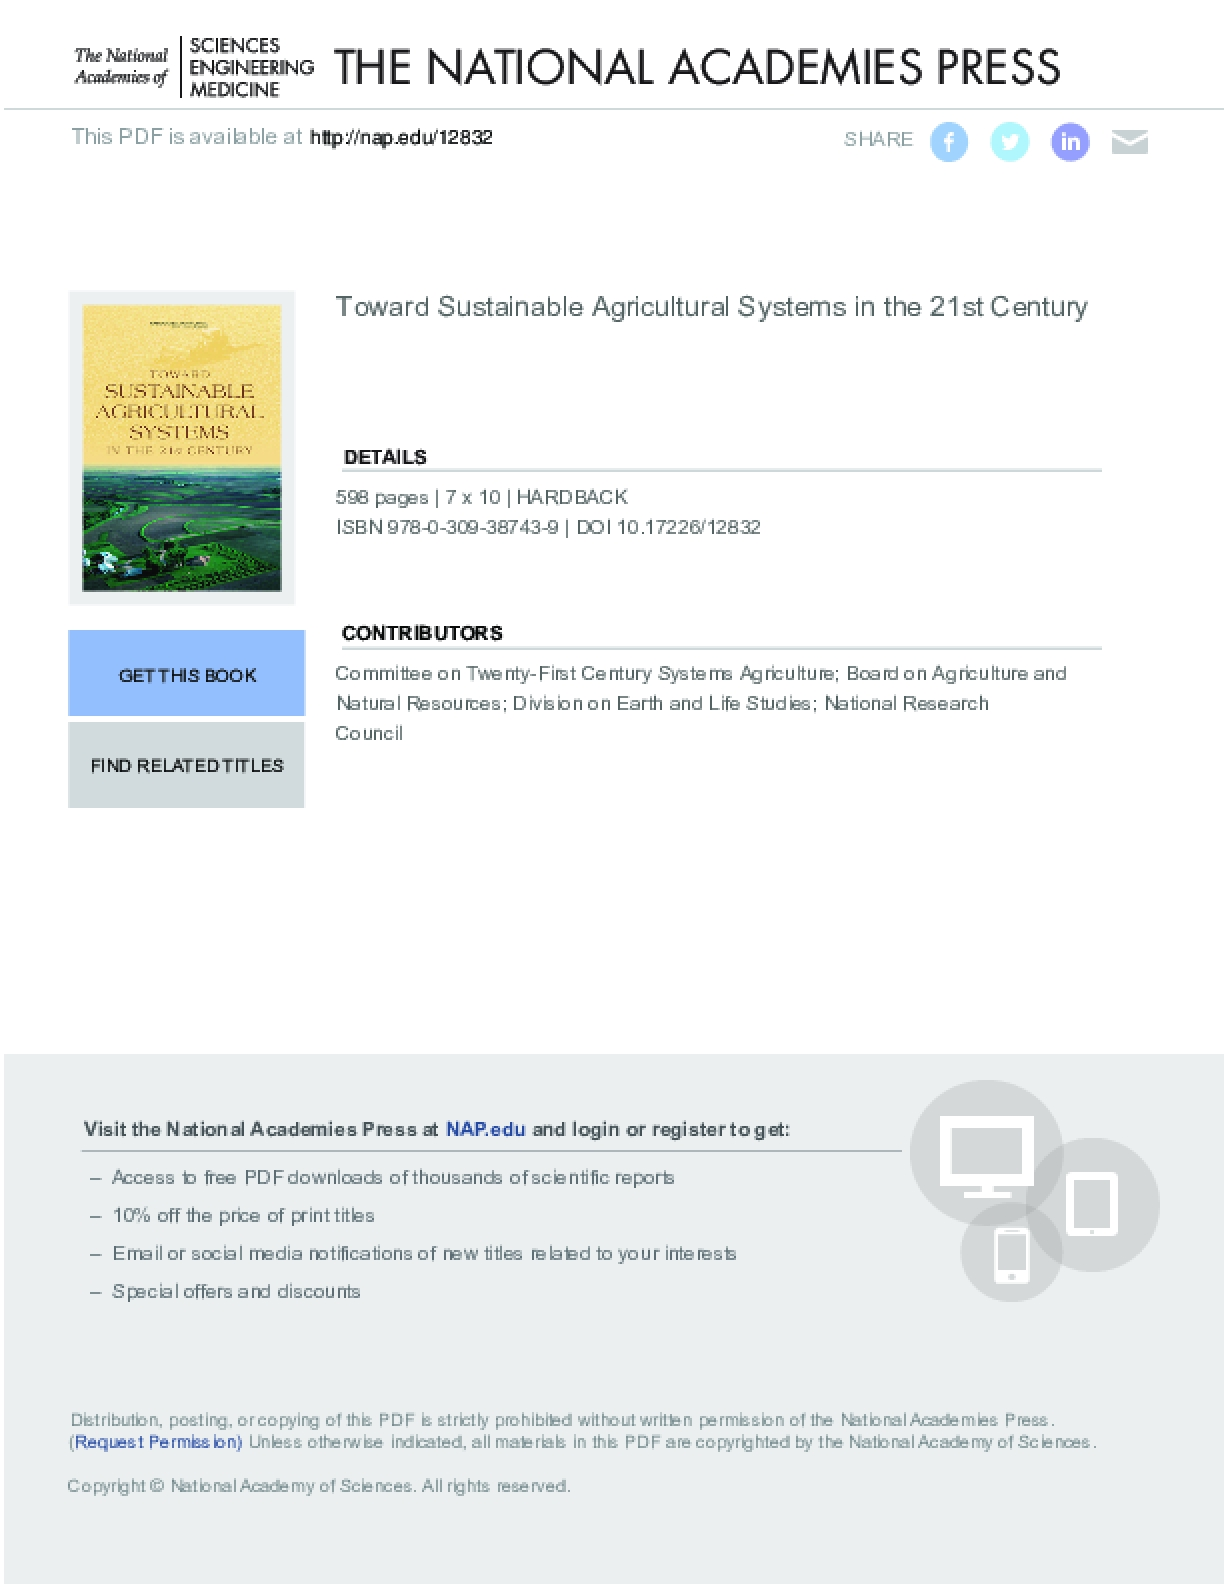 Towards Sustainable Agriculture Systems in the 21st Century